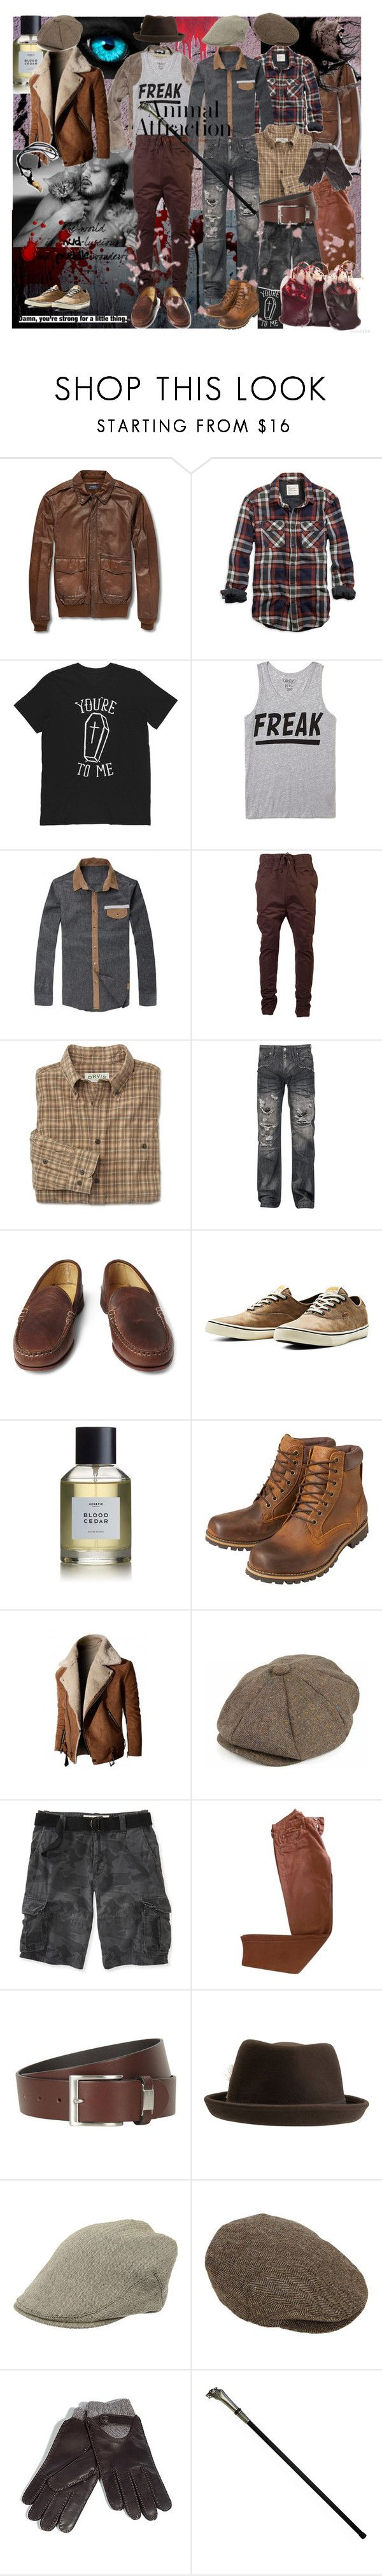 """""""Clan Gangrel"""" by verysmallgoddess ❤ liked on Polyvore featuring Polo Ralph Lauren, American Eagle Outfitters, Burberry, 21 Men, I Love Ugly, Salomon, Quoddy, Jack & Jones, Heretic Parfum and Earthkeepers By Timberland"""